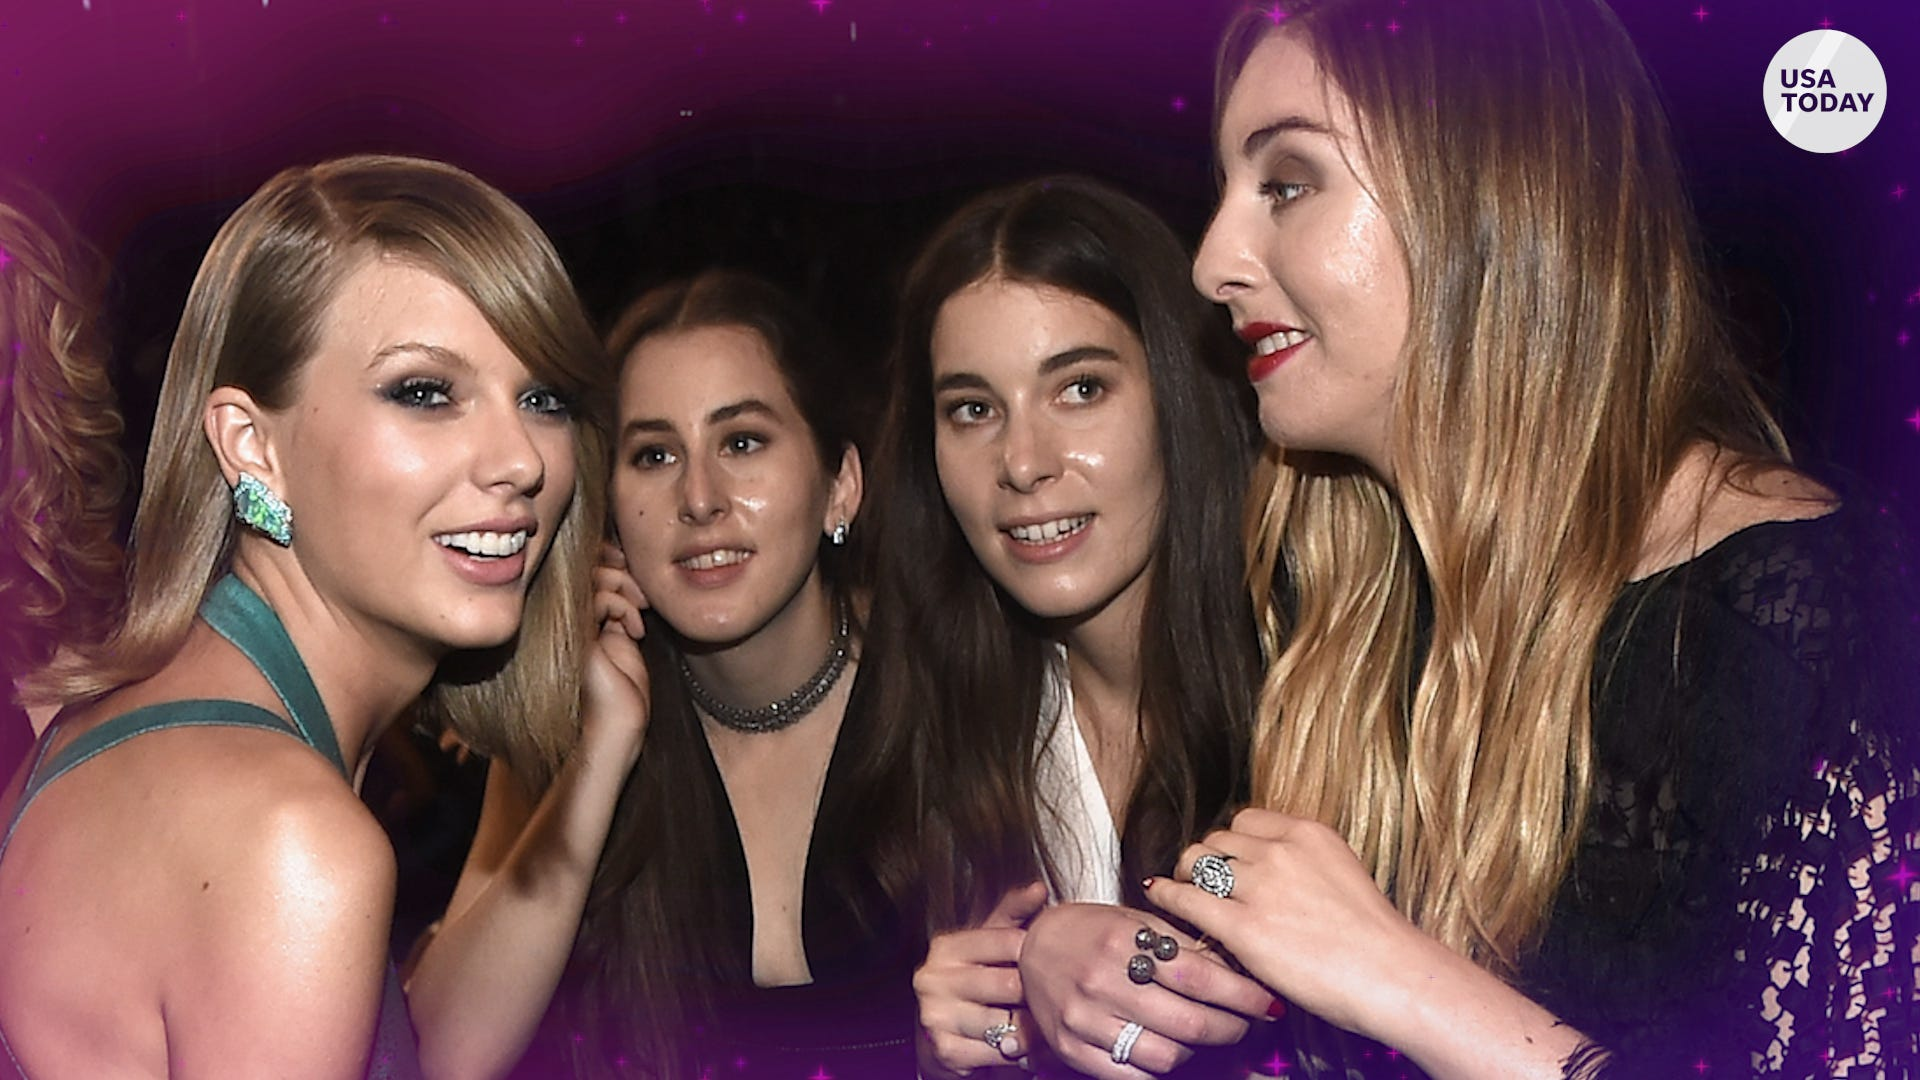 New music: Haim enlists Taylor Swift for 'Gasoline,' Ariana Grande drops deluxe 'Positions'